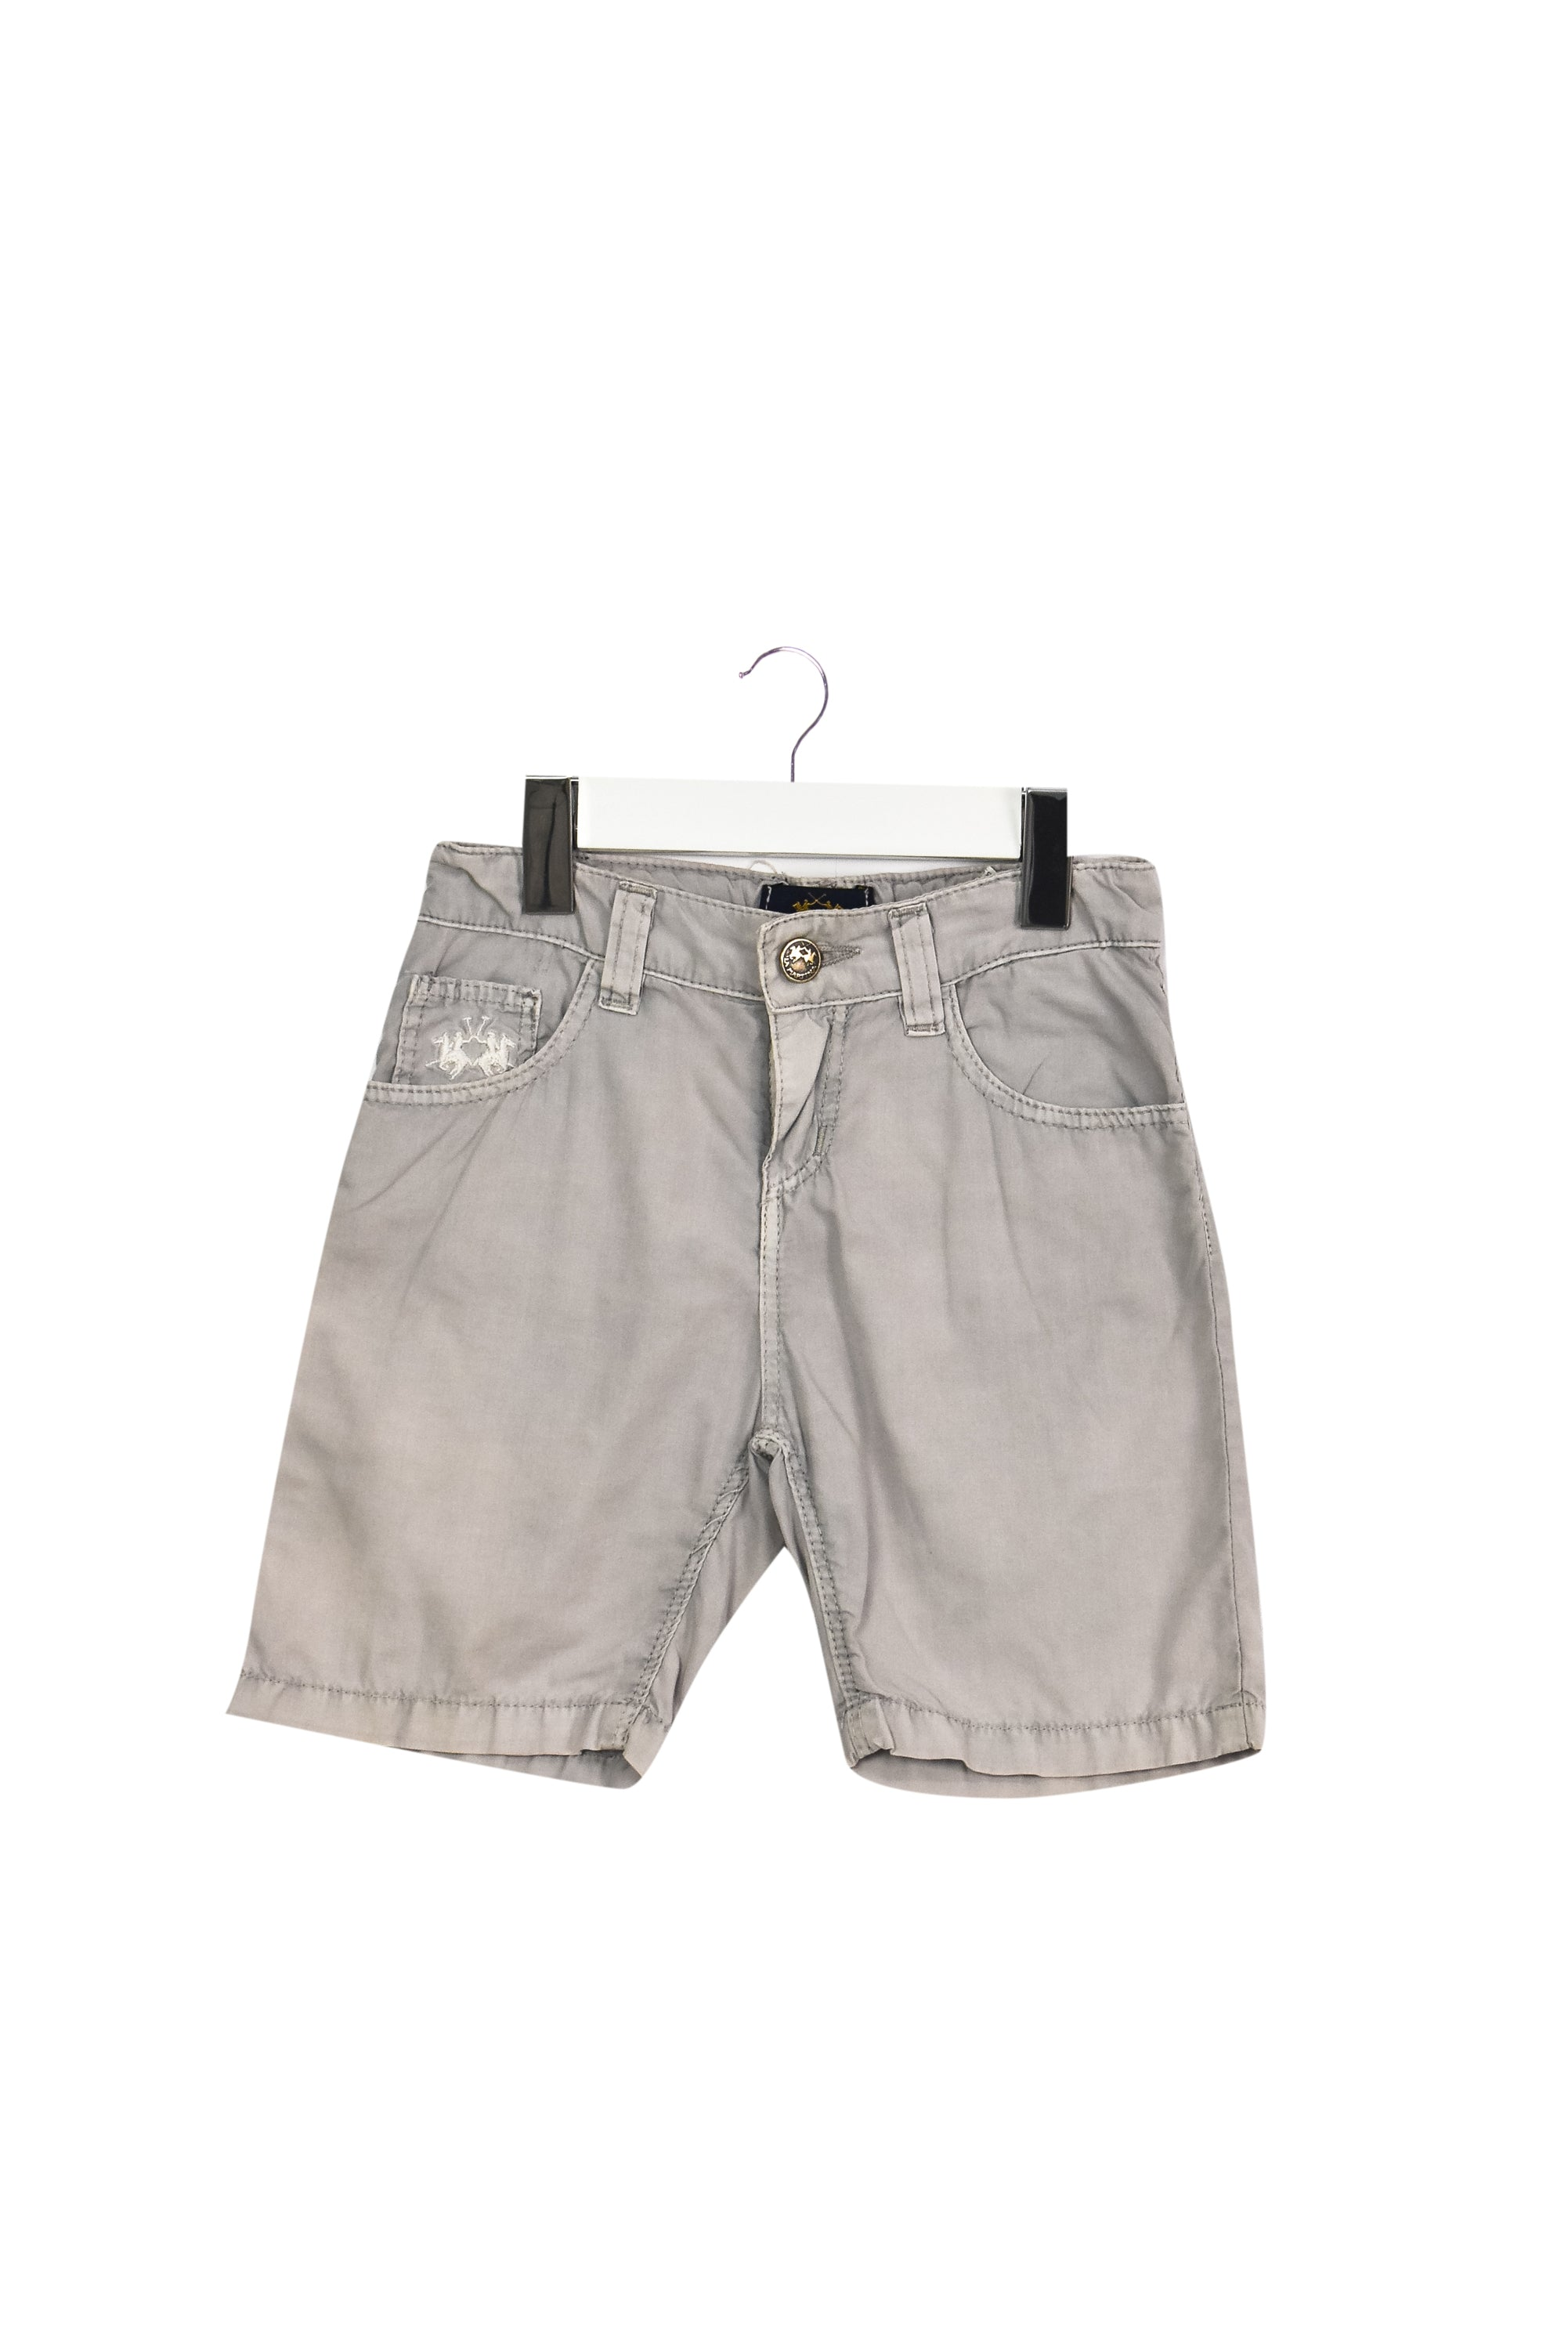 10035322 La Martina Kids~Shorts 3T at Retykle